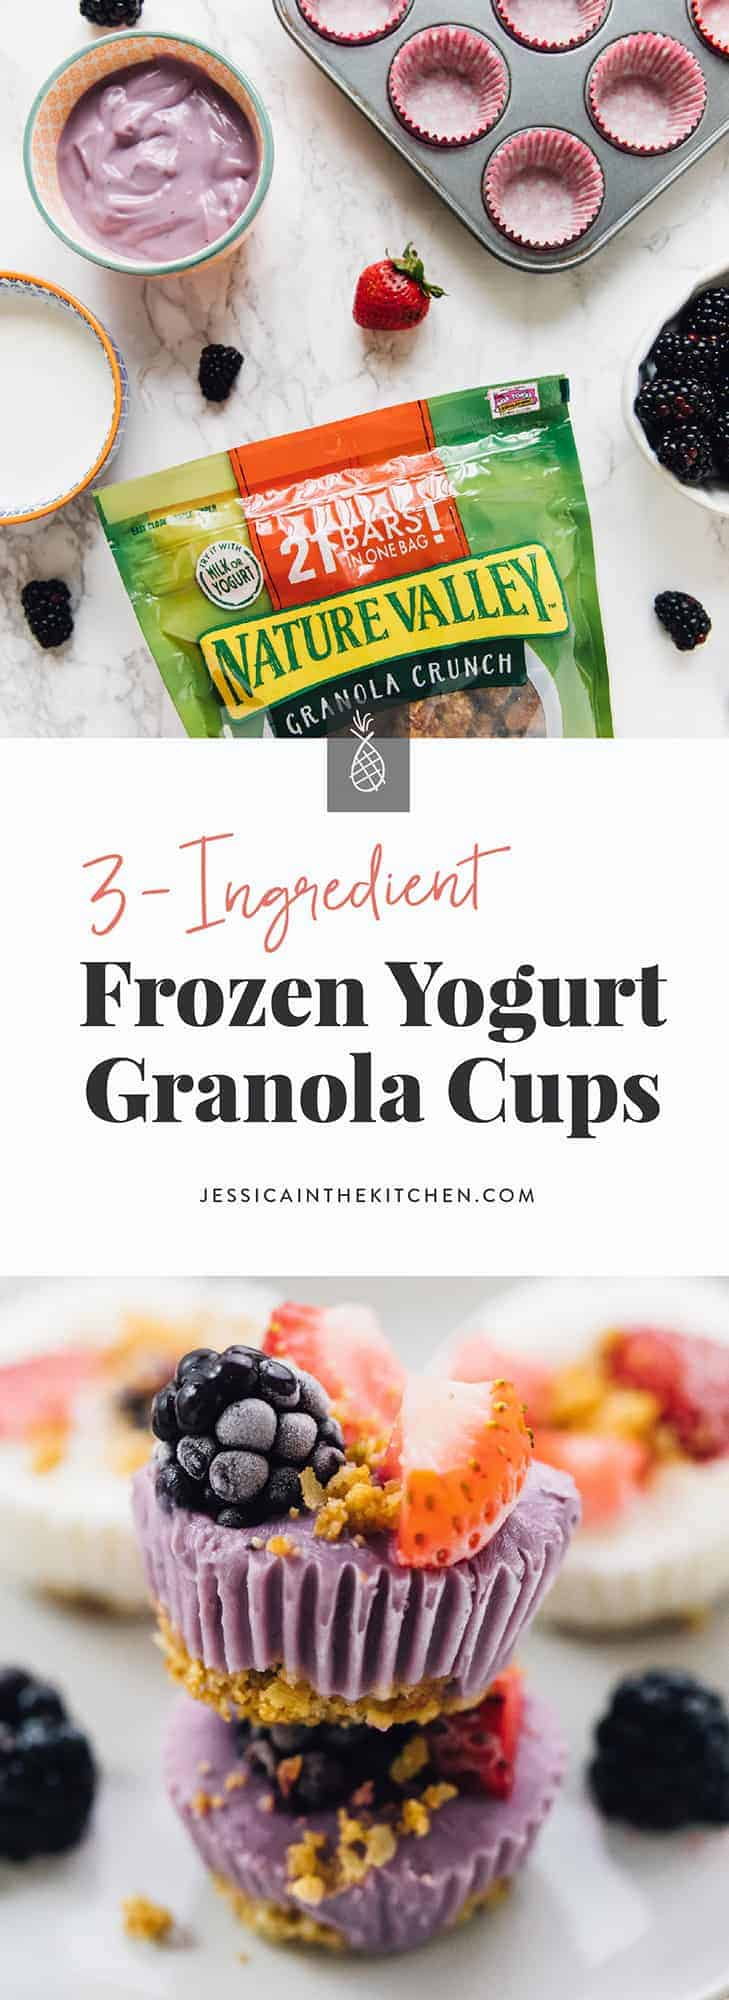 These 3-ingredient Frozen Yogurt Granola Cups are so incredibly easy to make! They're made out of granola, vegan yogurt and fruit - that's it!. Meal prep-able, and perfect for an on-the-go snack! via https://jessicainthekitchen.com #veganrecipes #vegans #vegetarians #recipes #plantbased #veganmeal #meals #healthy #breakfast #veganlife #veganeating